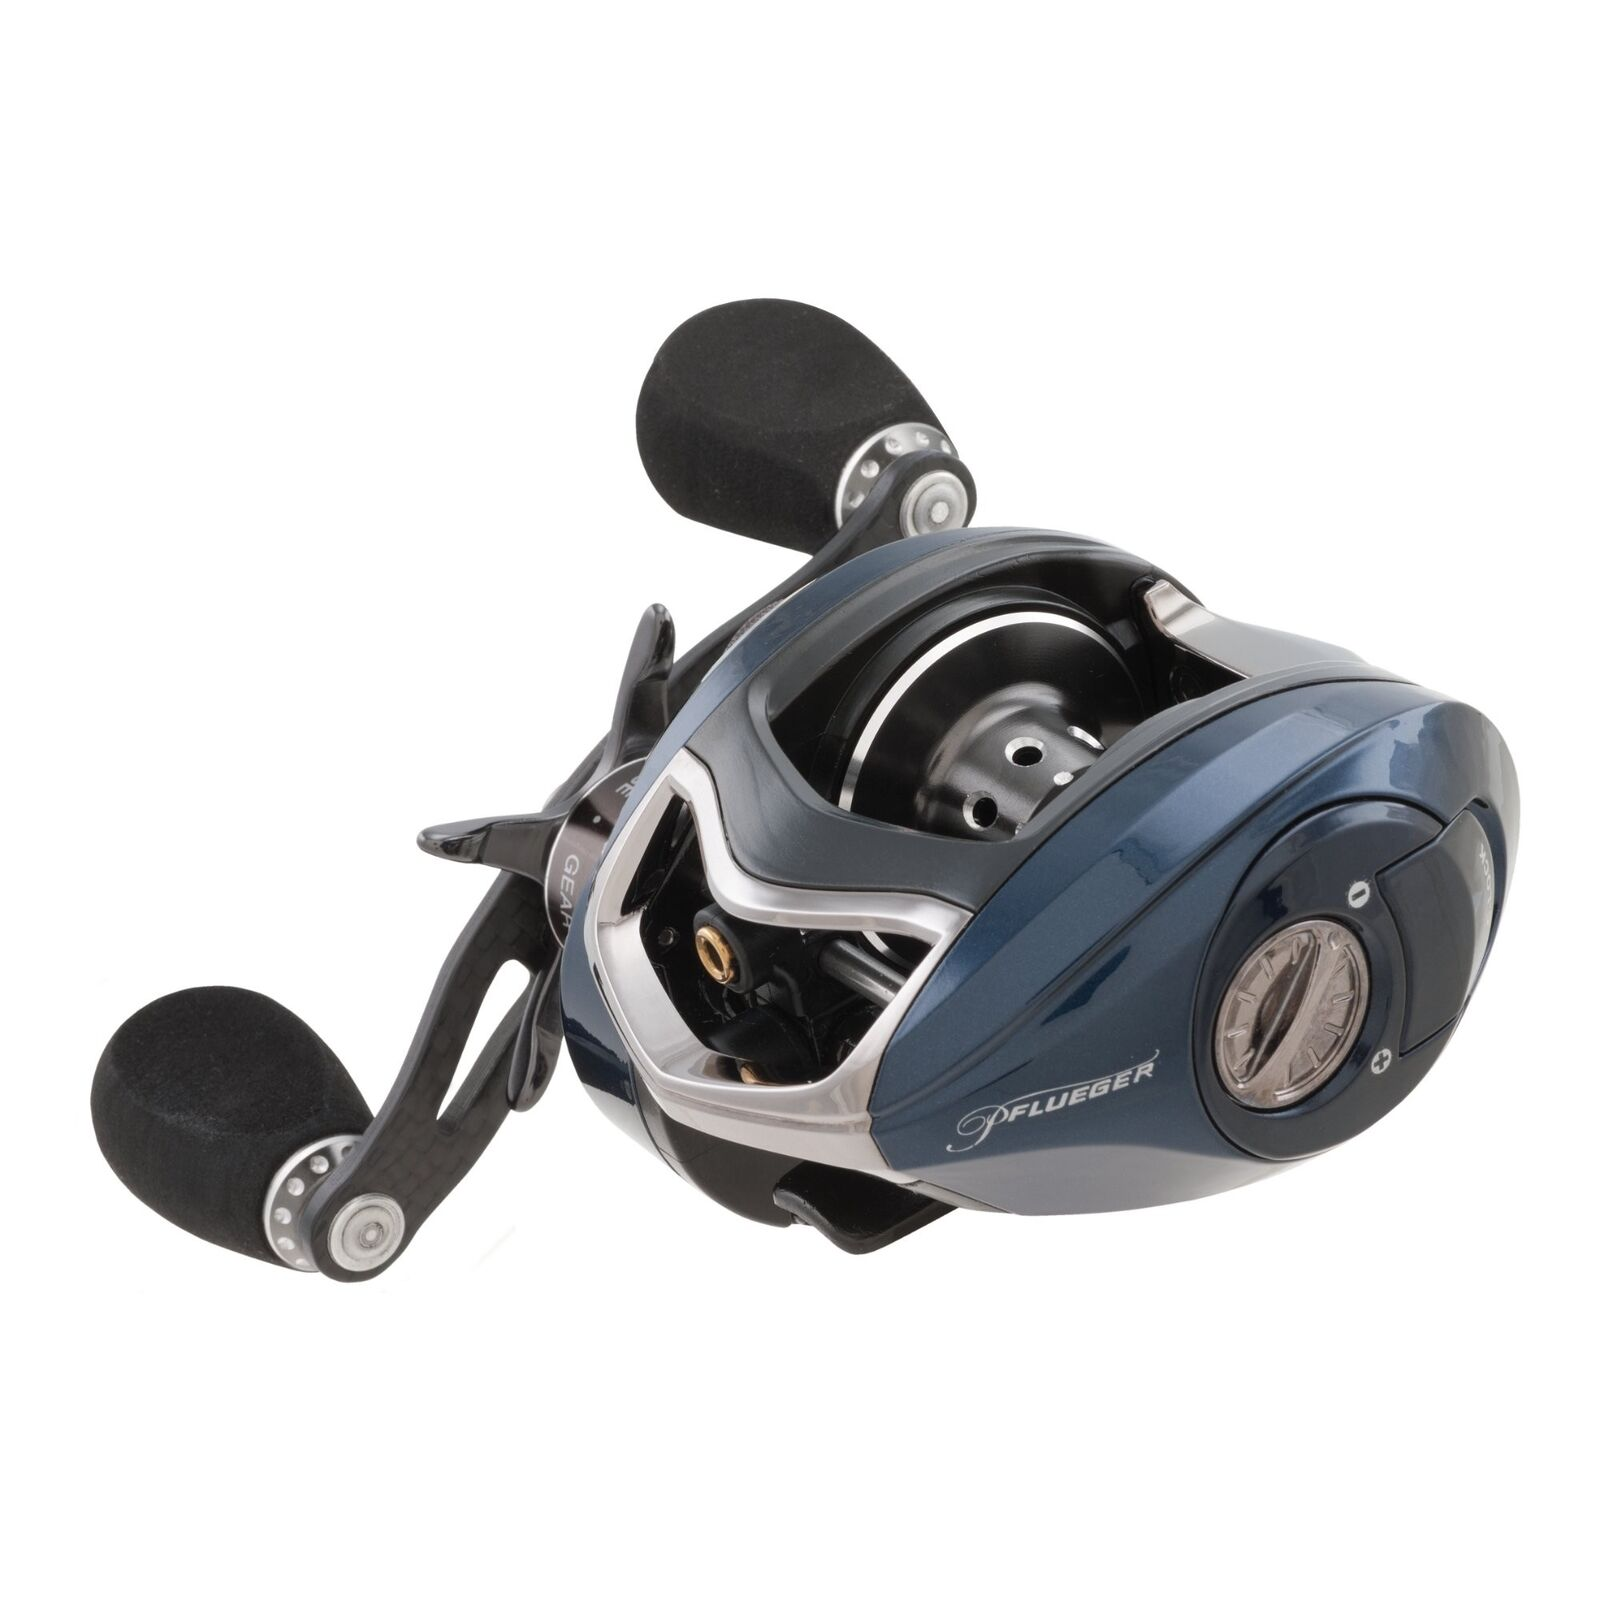 Pflueger Patriarch Low Profile Baitcast Fishing Reel PAT79LPX